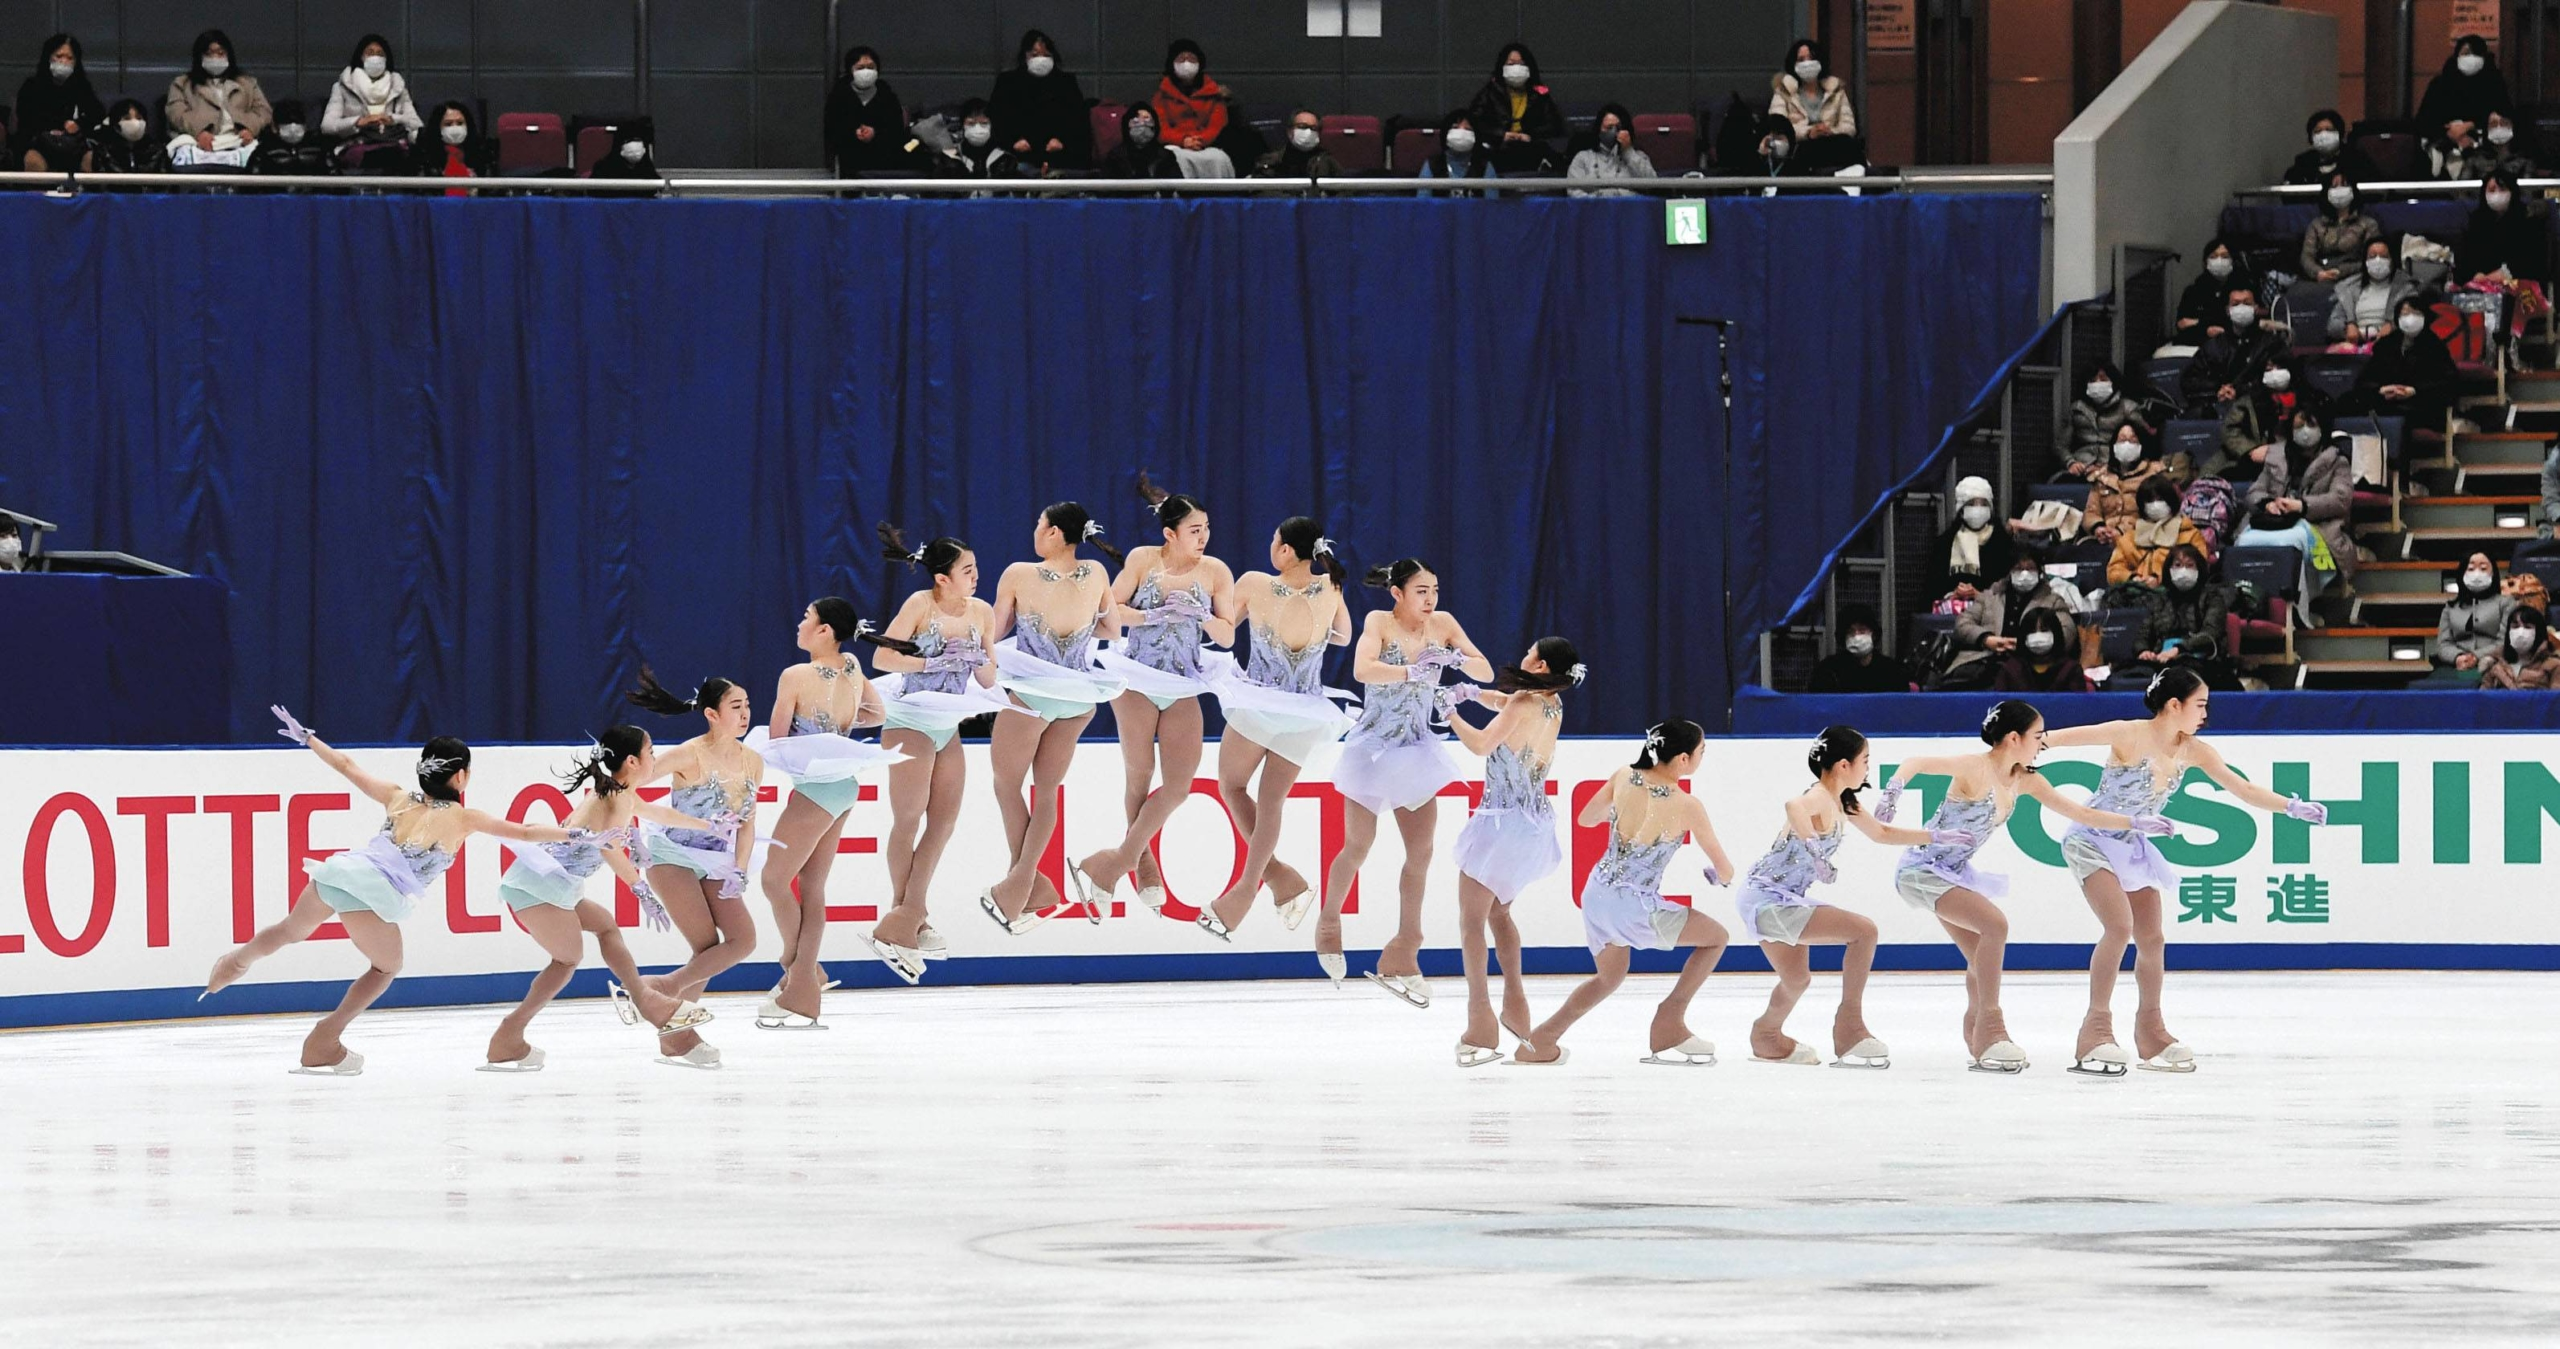 Rika Kihira executes a quad salchow in her free skate at the national figure skating championships in Nagano on Sunday. | KYODO